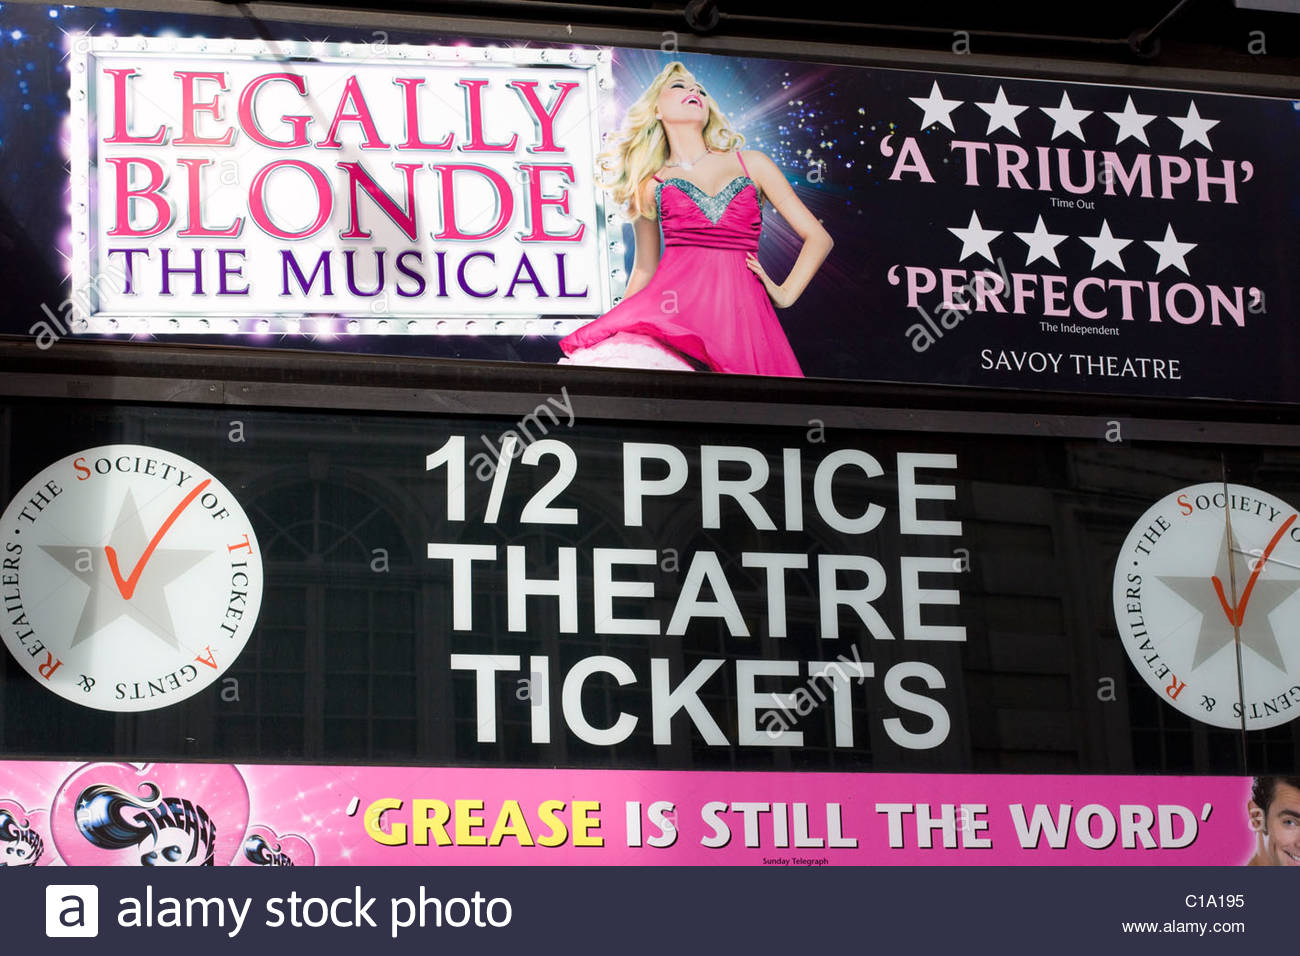 Theater Billboard Advertising Legally Blonde The Musical - Stock Image